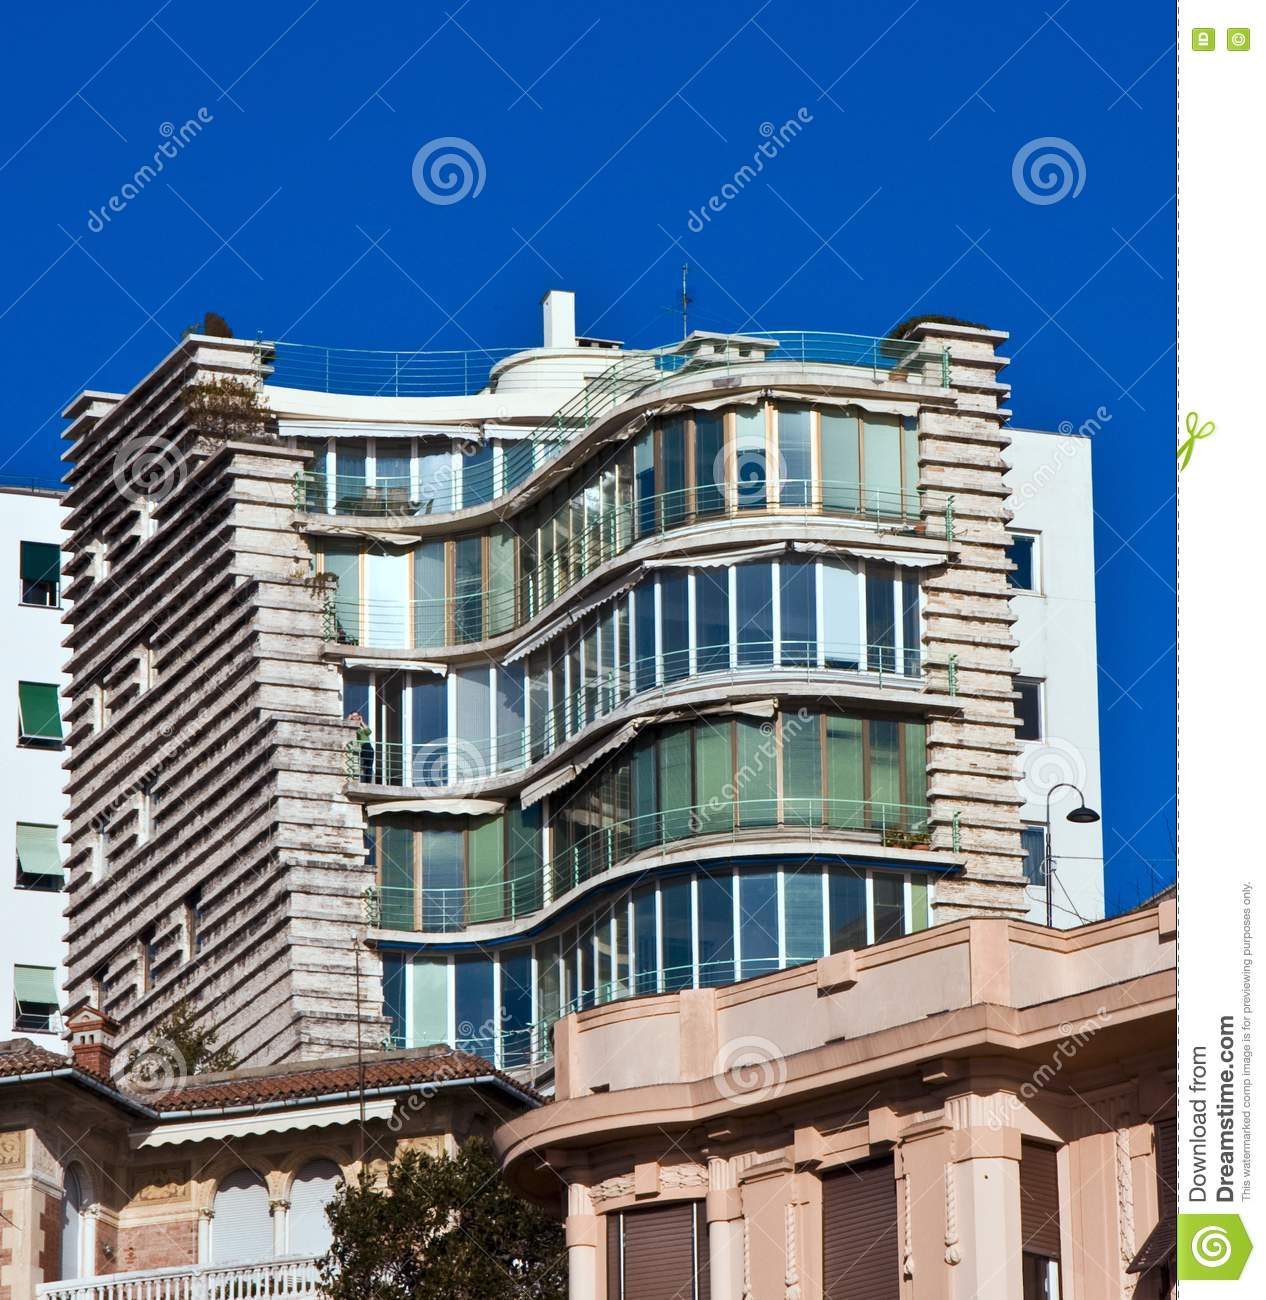 A House Without Edges Royalty Free Stock Photos Image